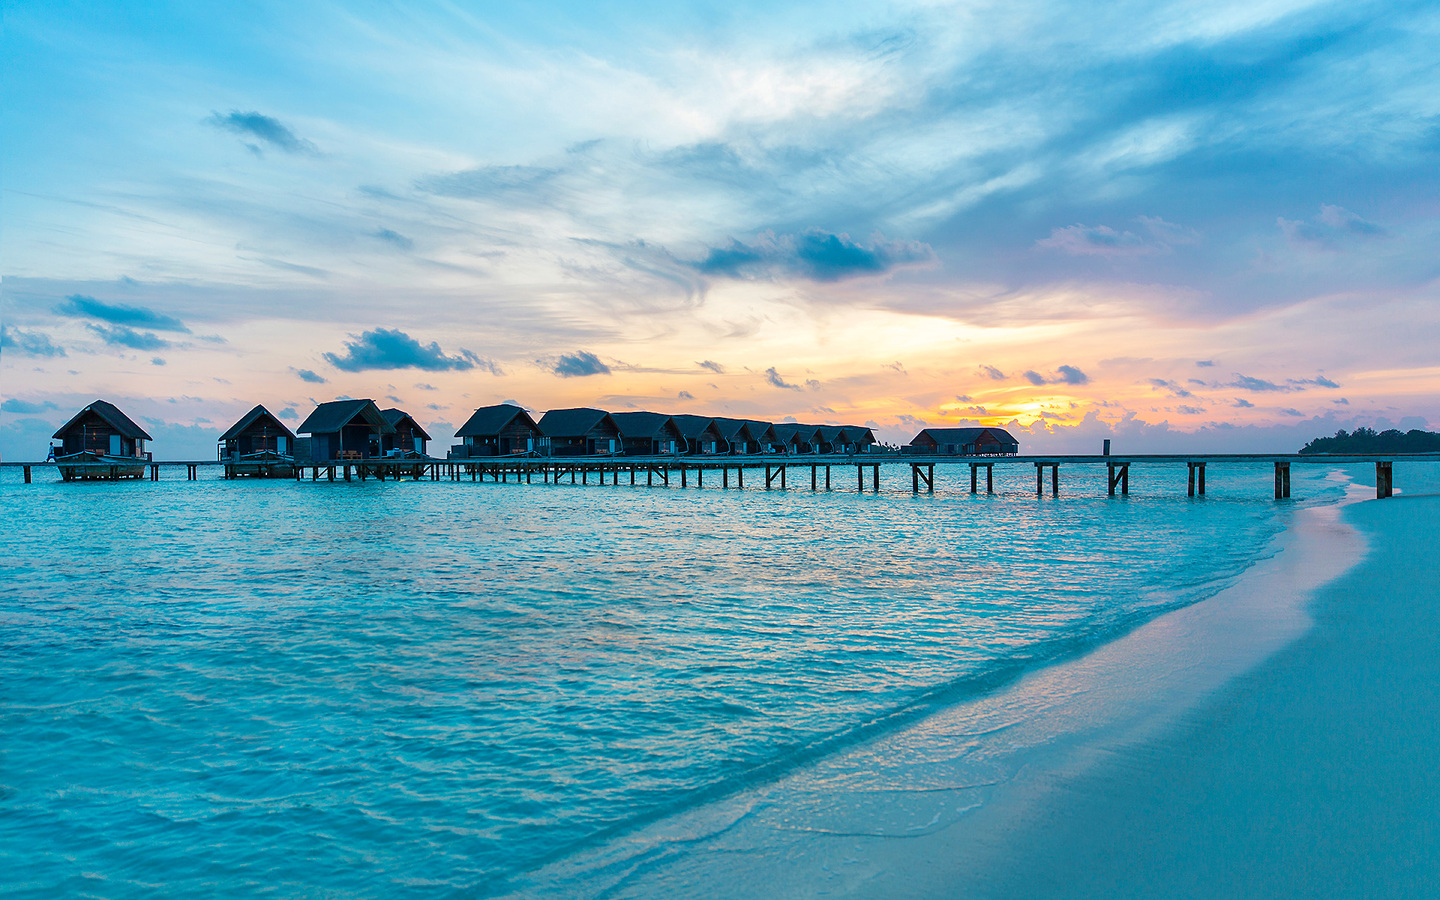 maldives-resorts-huts-over-water-22.jpg